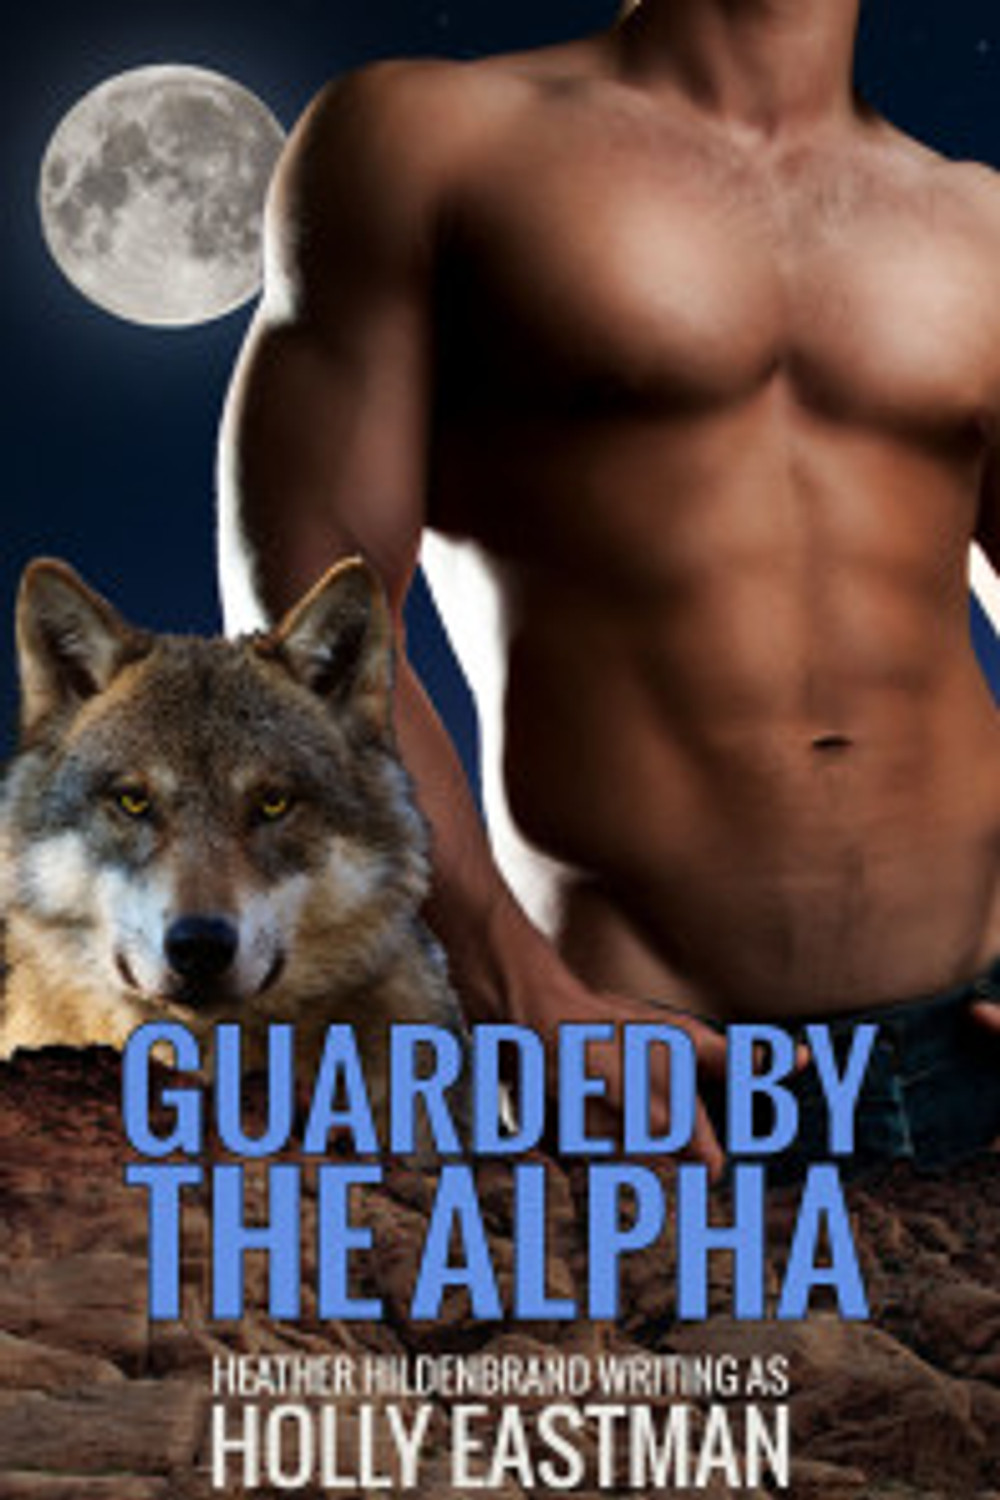 guarded-by-the-alpha-new-final-cover